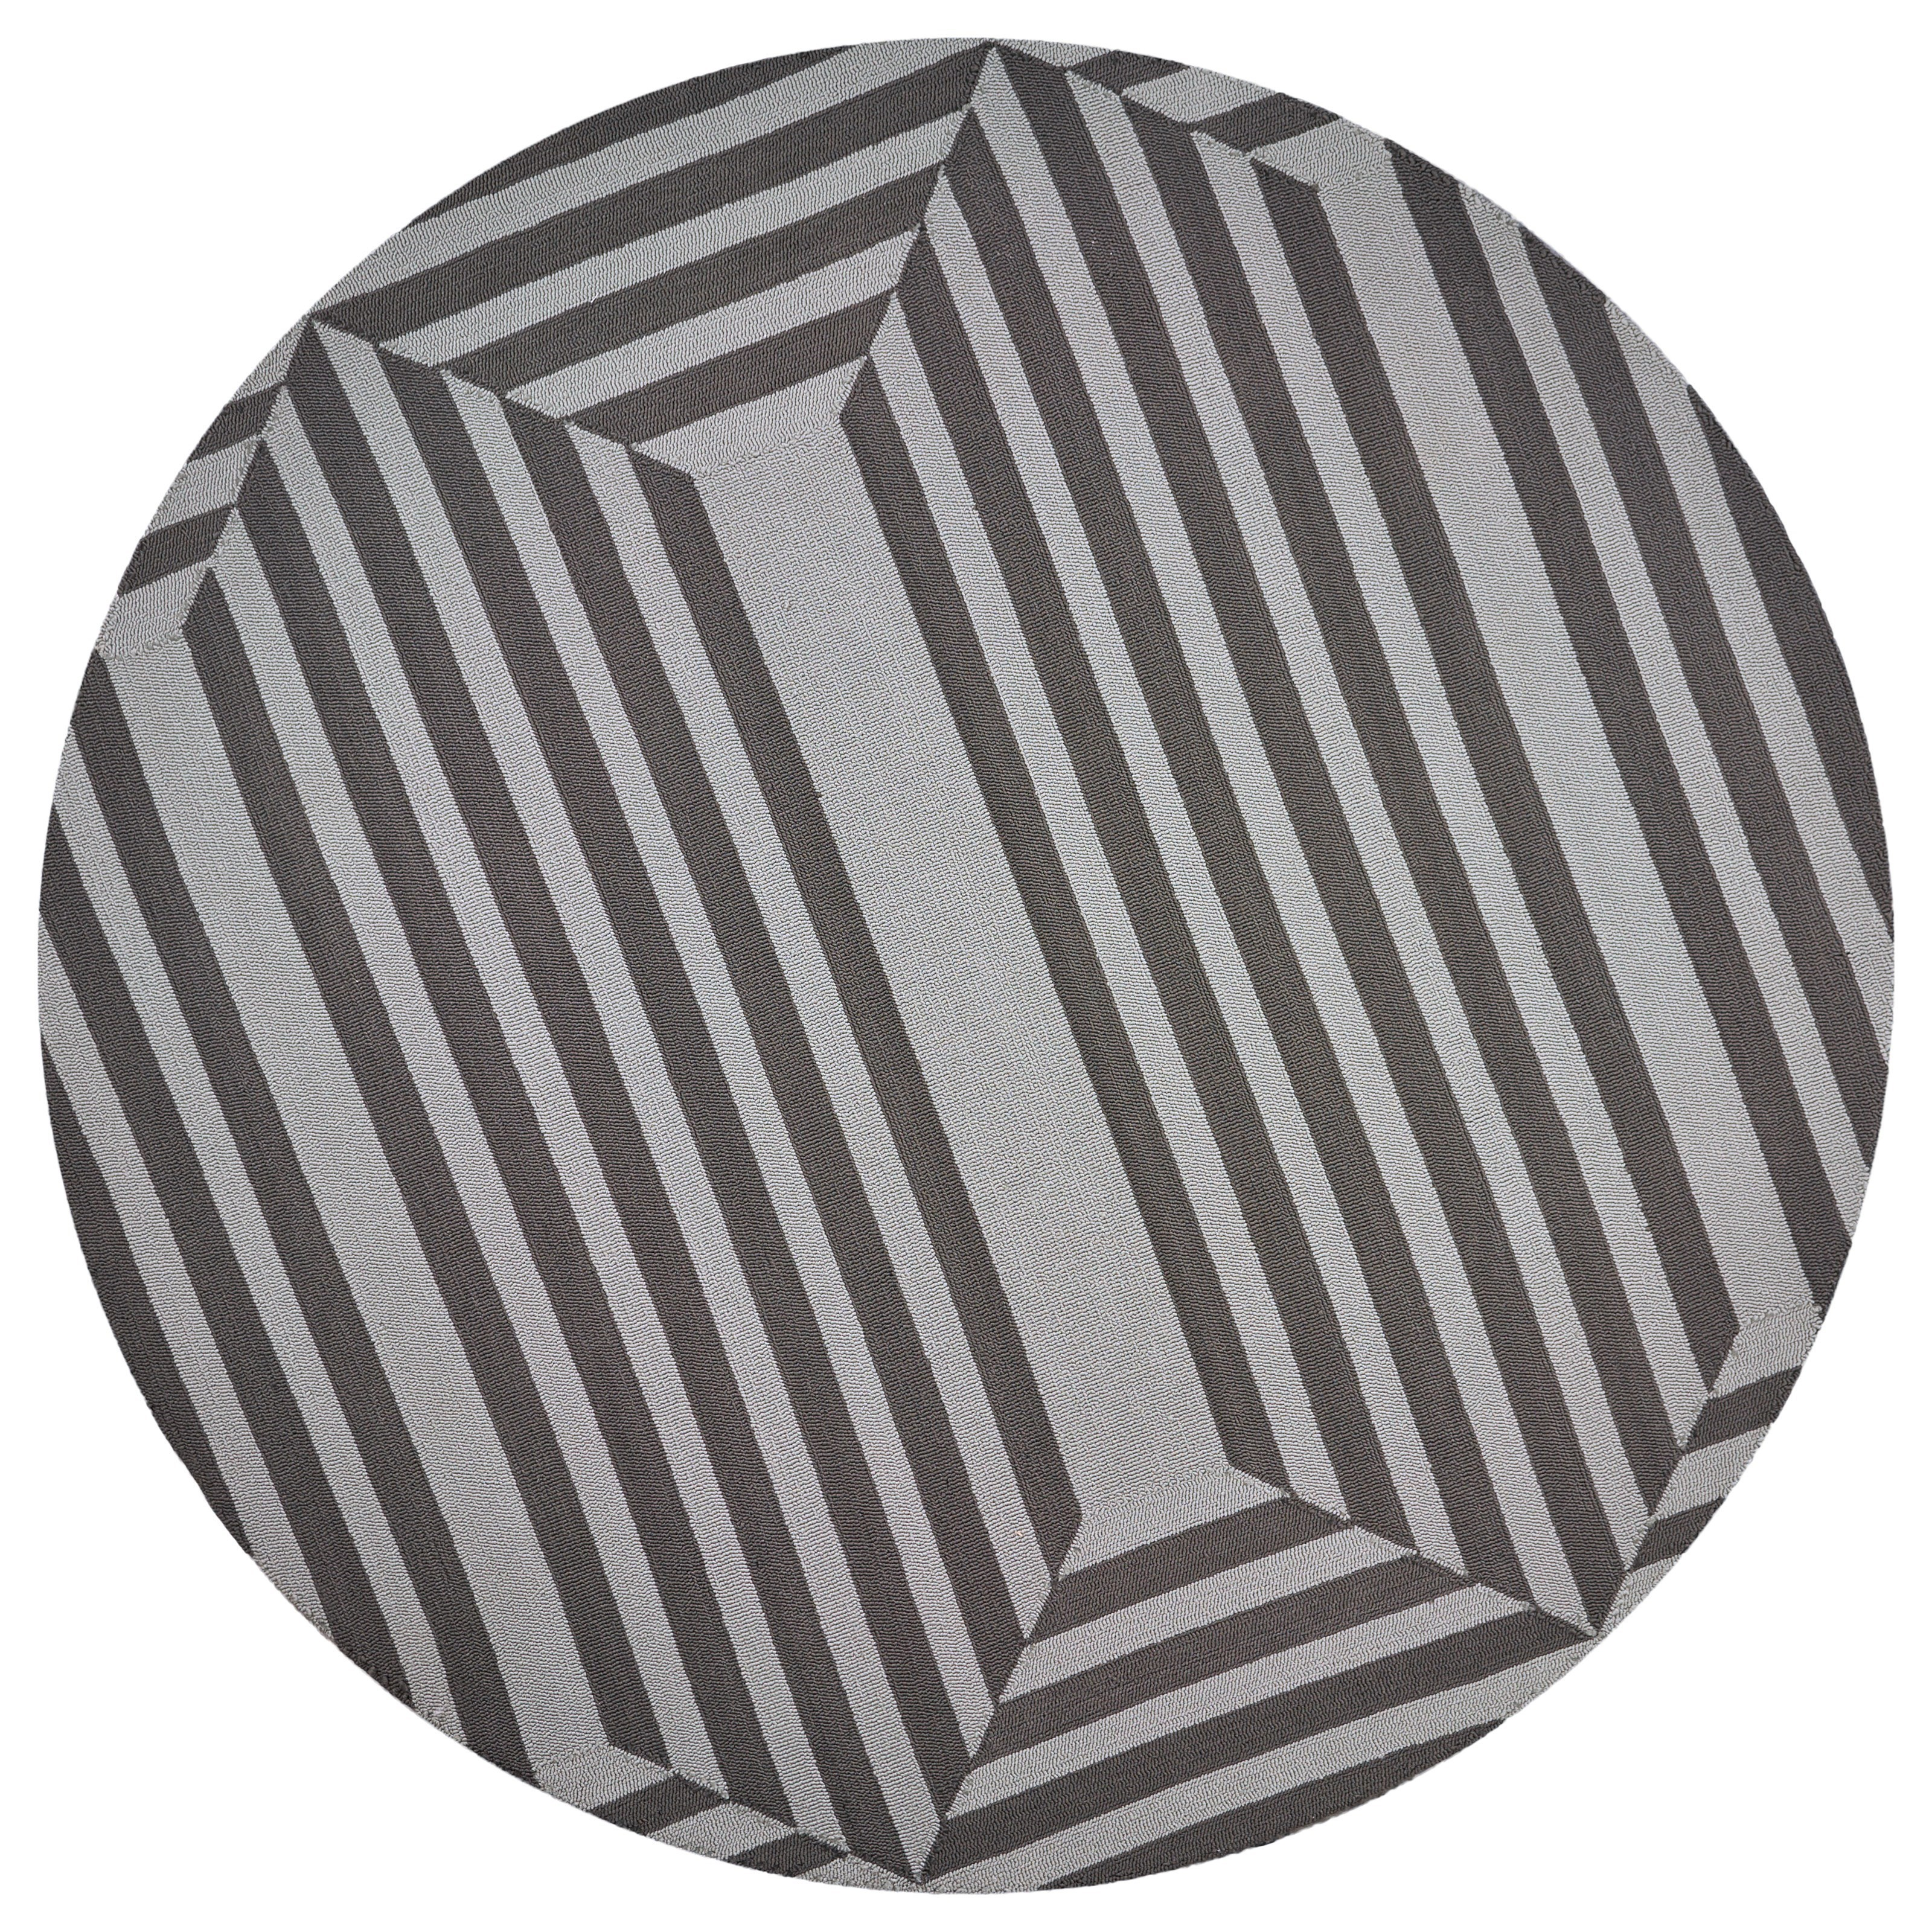 Libby Langdon Hamptons 7' Round Rug by Kas at Zak's Home